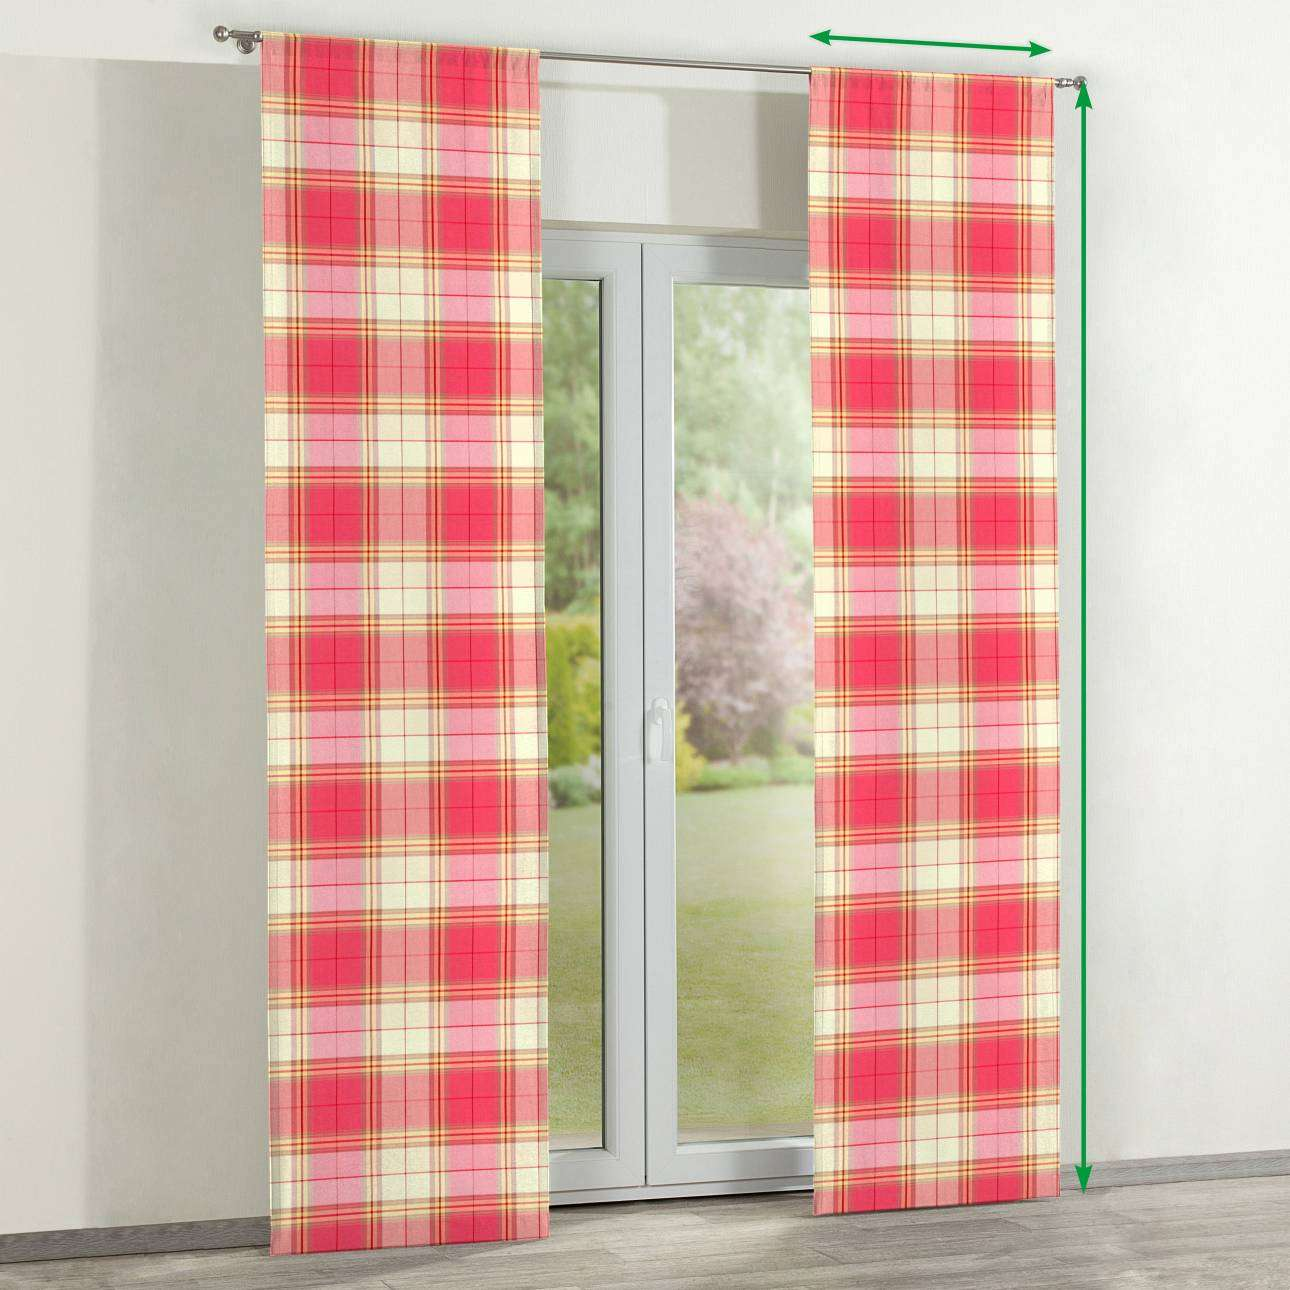 Slot panel curtains – Set of 2 in collection Bristol, fabric: 125-25